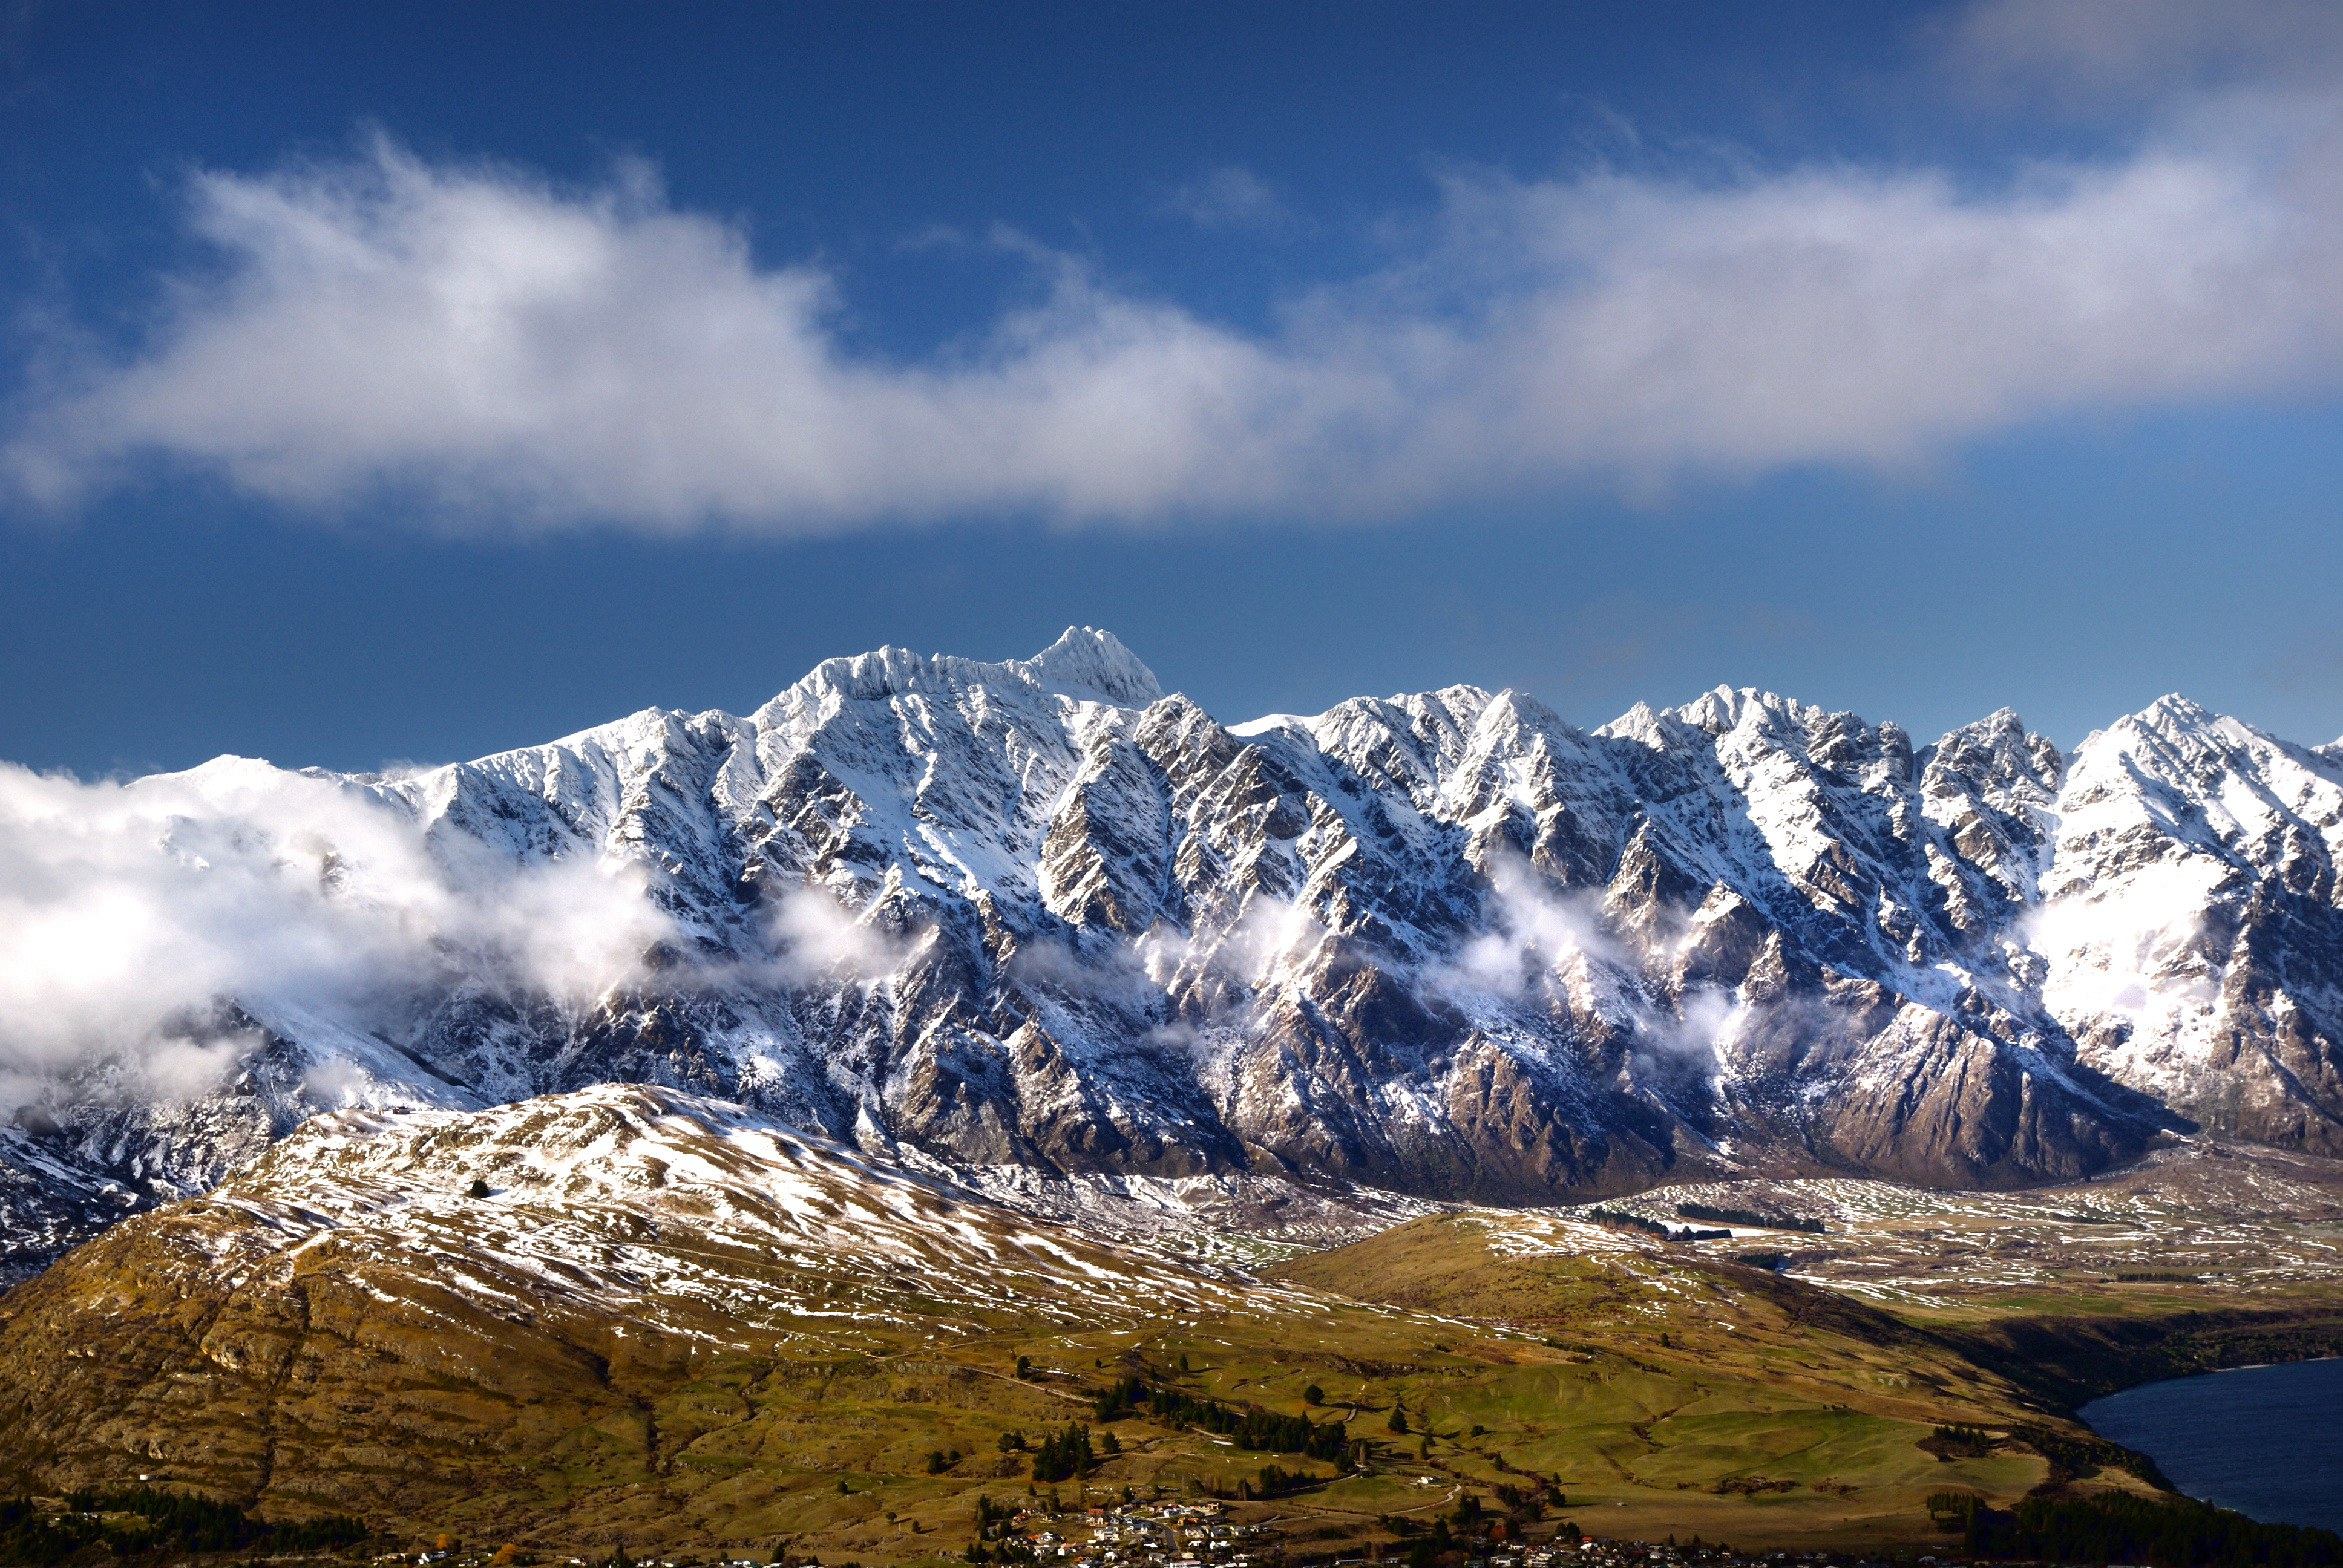 The Remarkables. Queenstown NZ, Cloud, Free photos, Landscape, Mountain, HQ Photo